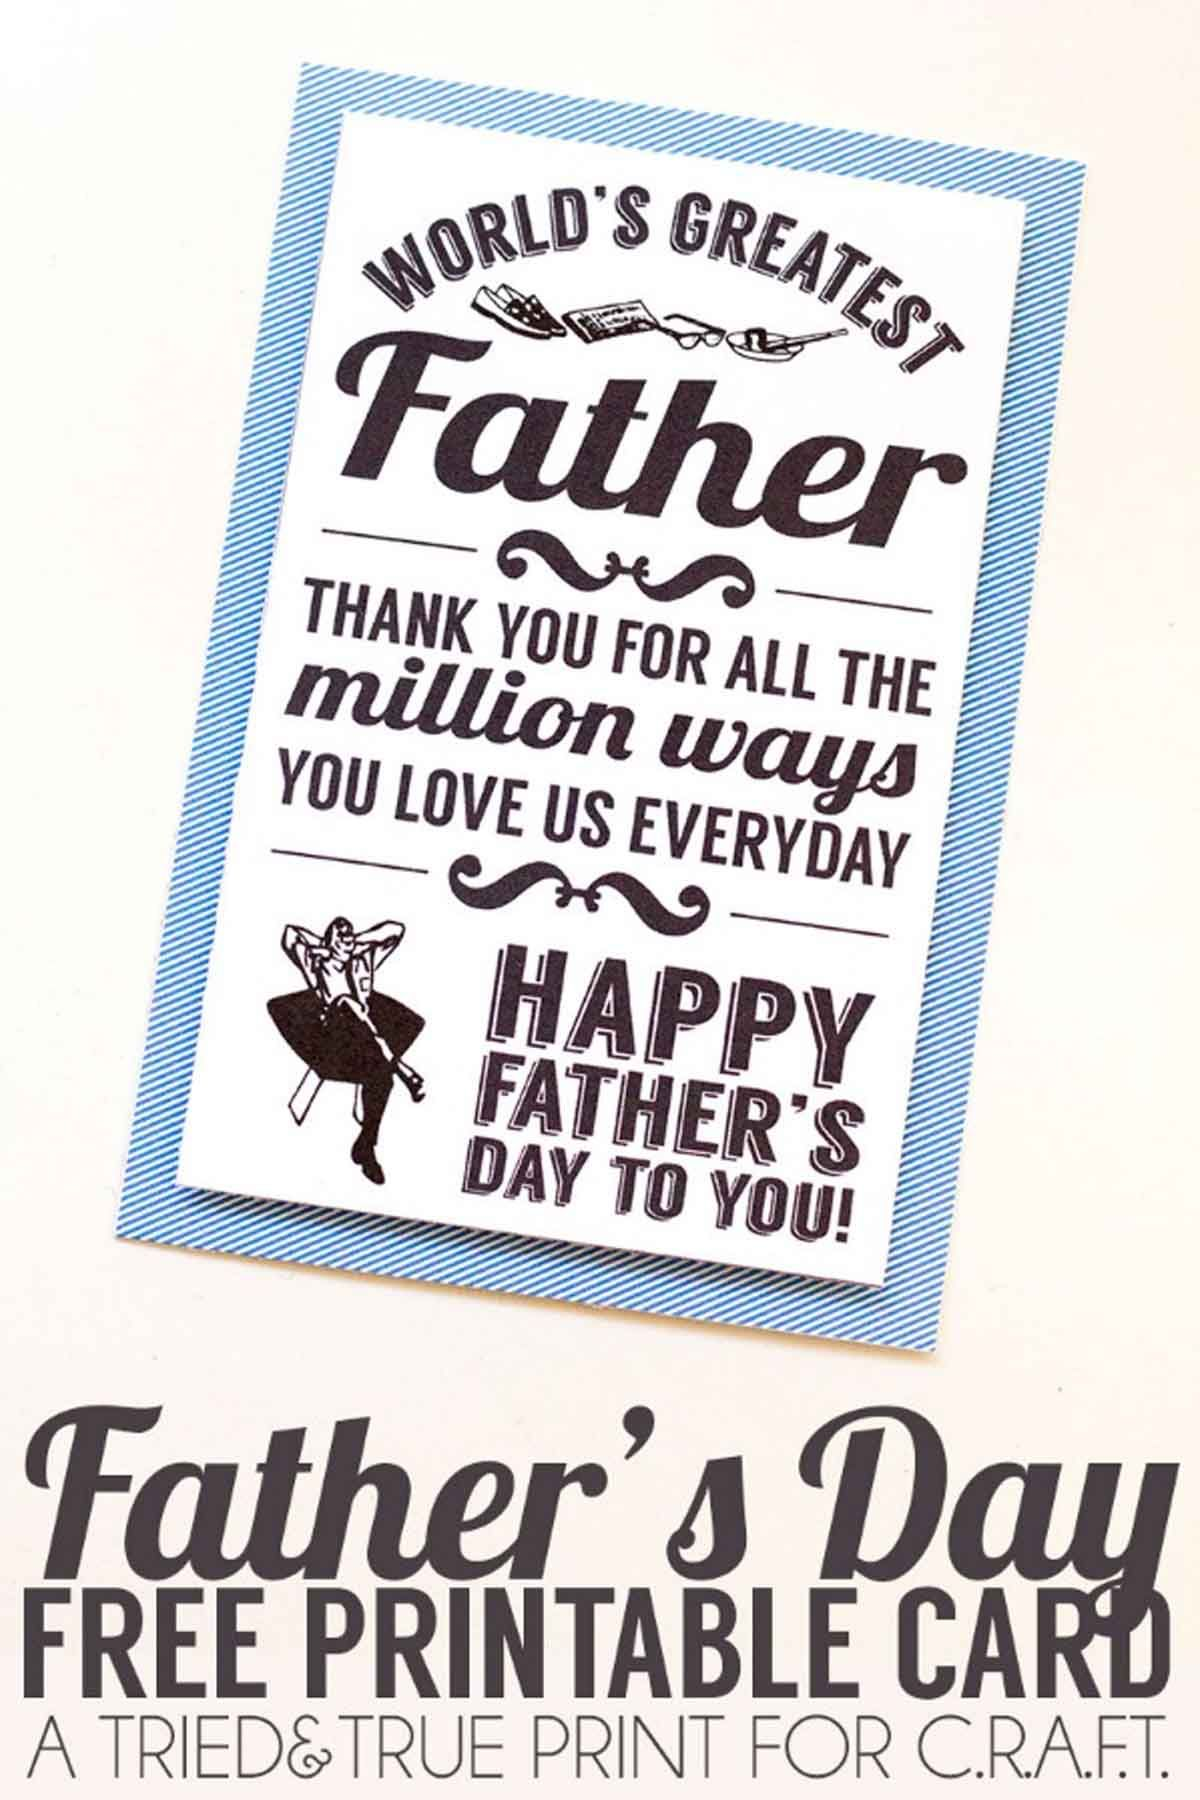 photo regarding Happy Fathers Day Card Printable known as 25 Printable Fathers Working day Playing cards - Absolutely free Printable Playing cards For